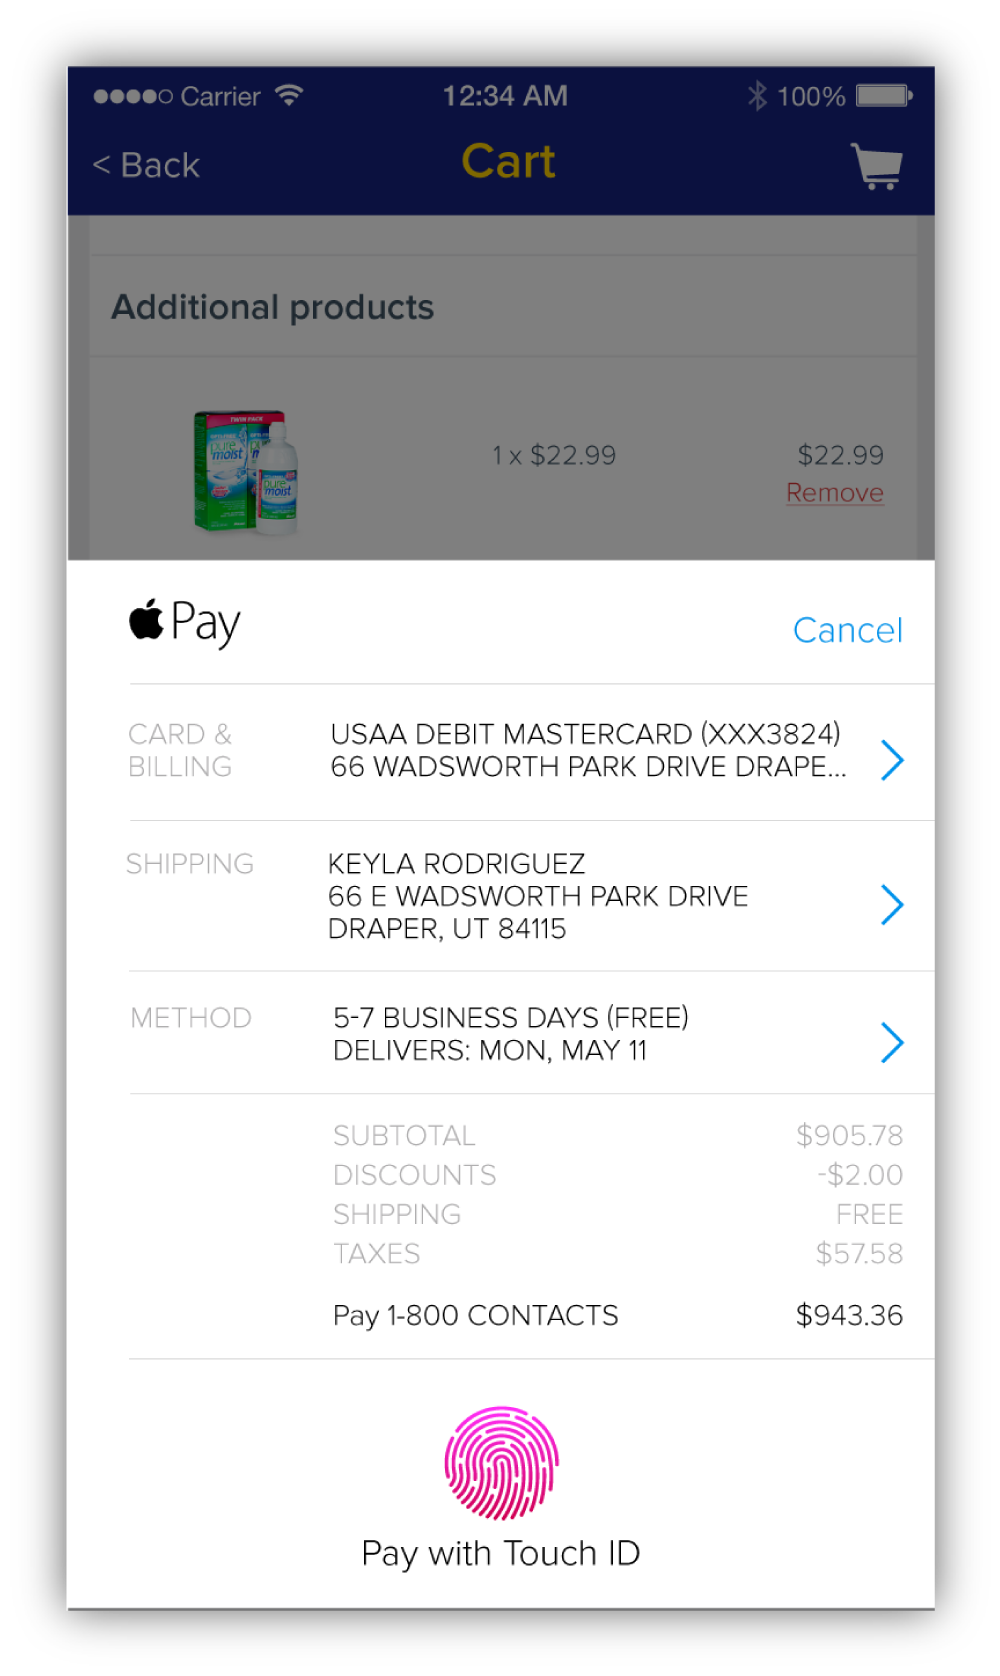 Apple Pay was added for iOS users and Google Wallet was added for Android users.